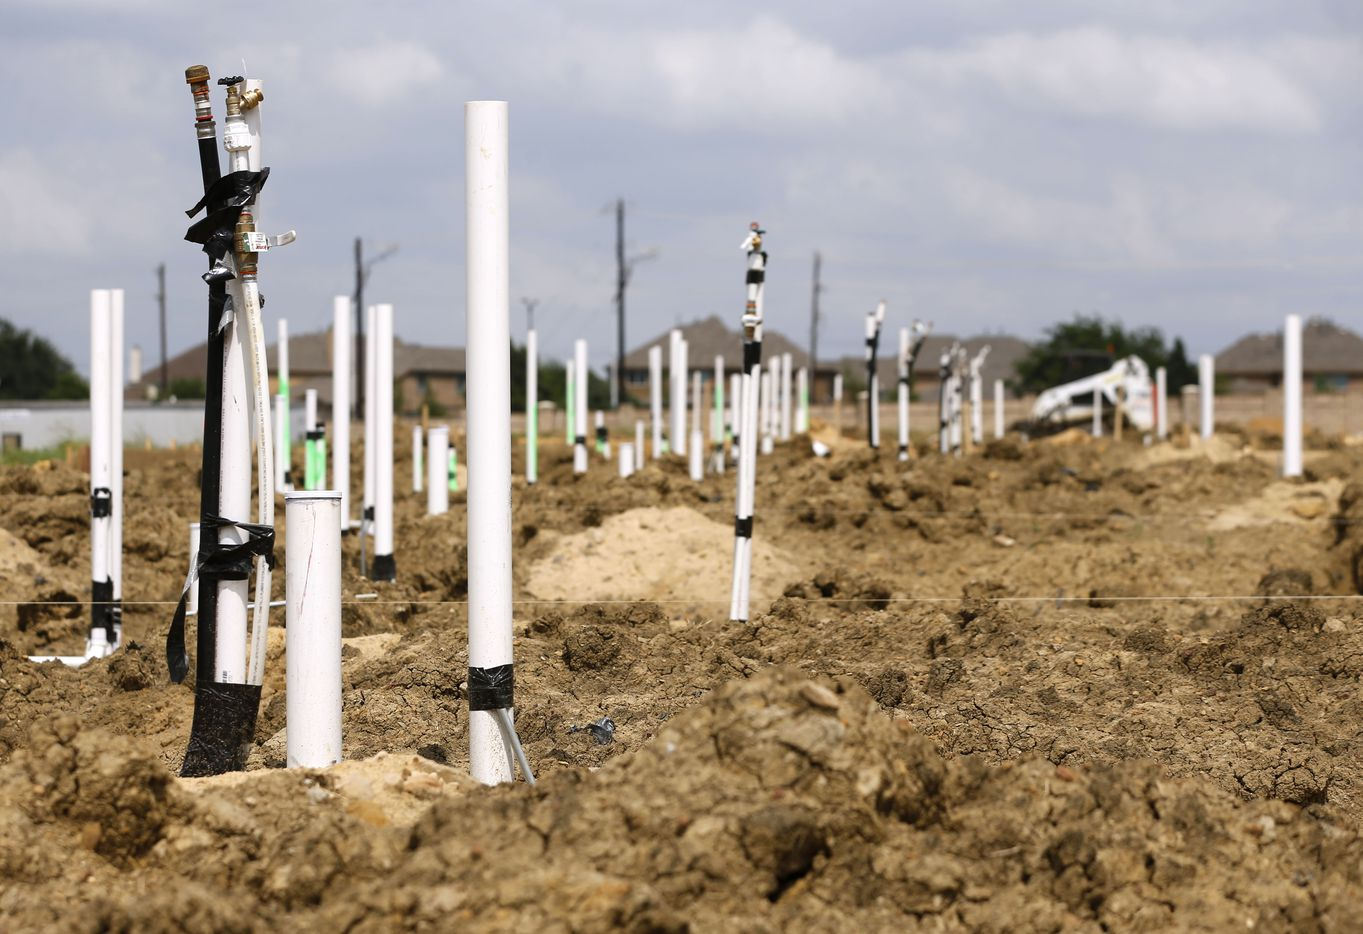 Townhomes under construction in Little Elm, Texas on Wednesday, May 22, 2019. Little Elm, which had just 3,500 people as of the 2000 Census, surpassed 50,000 residents in 2018. (Vernon Bryant/The Dallas Morning News)